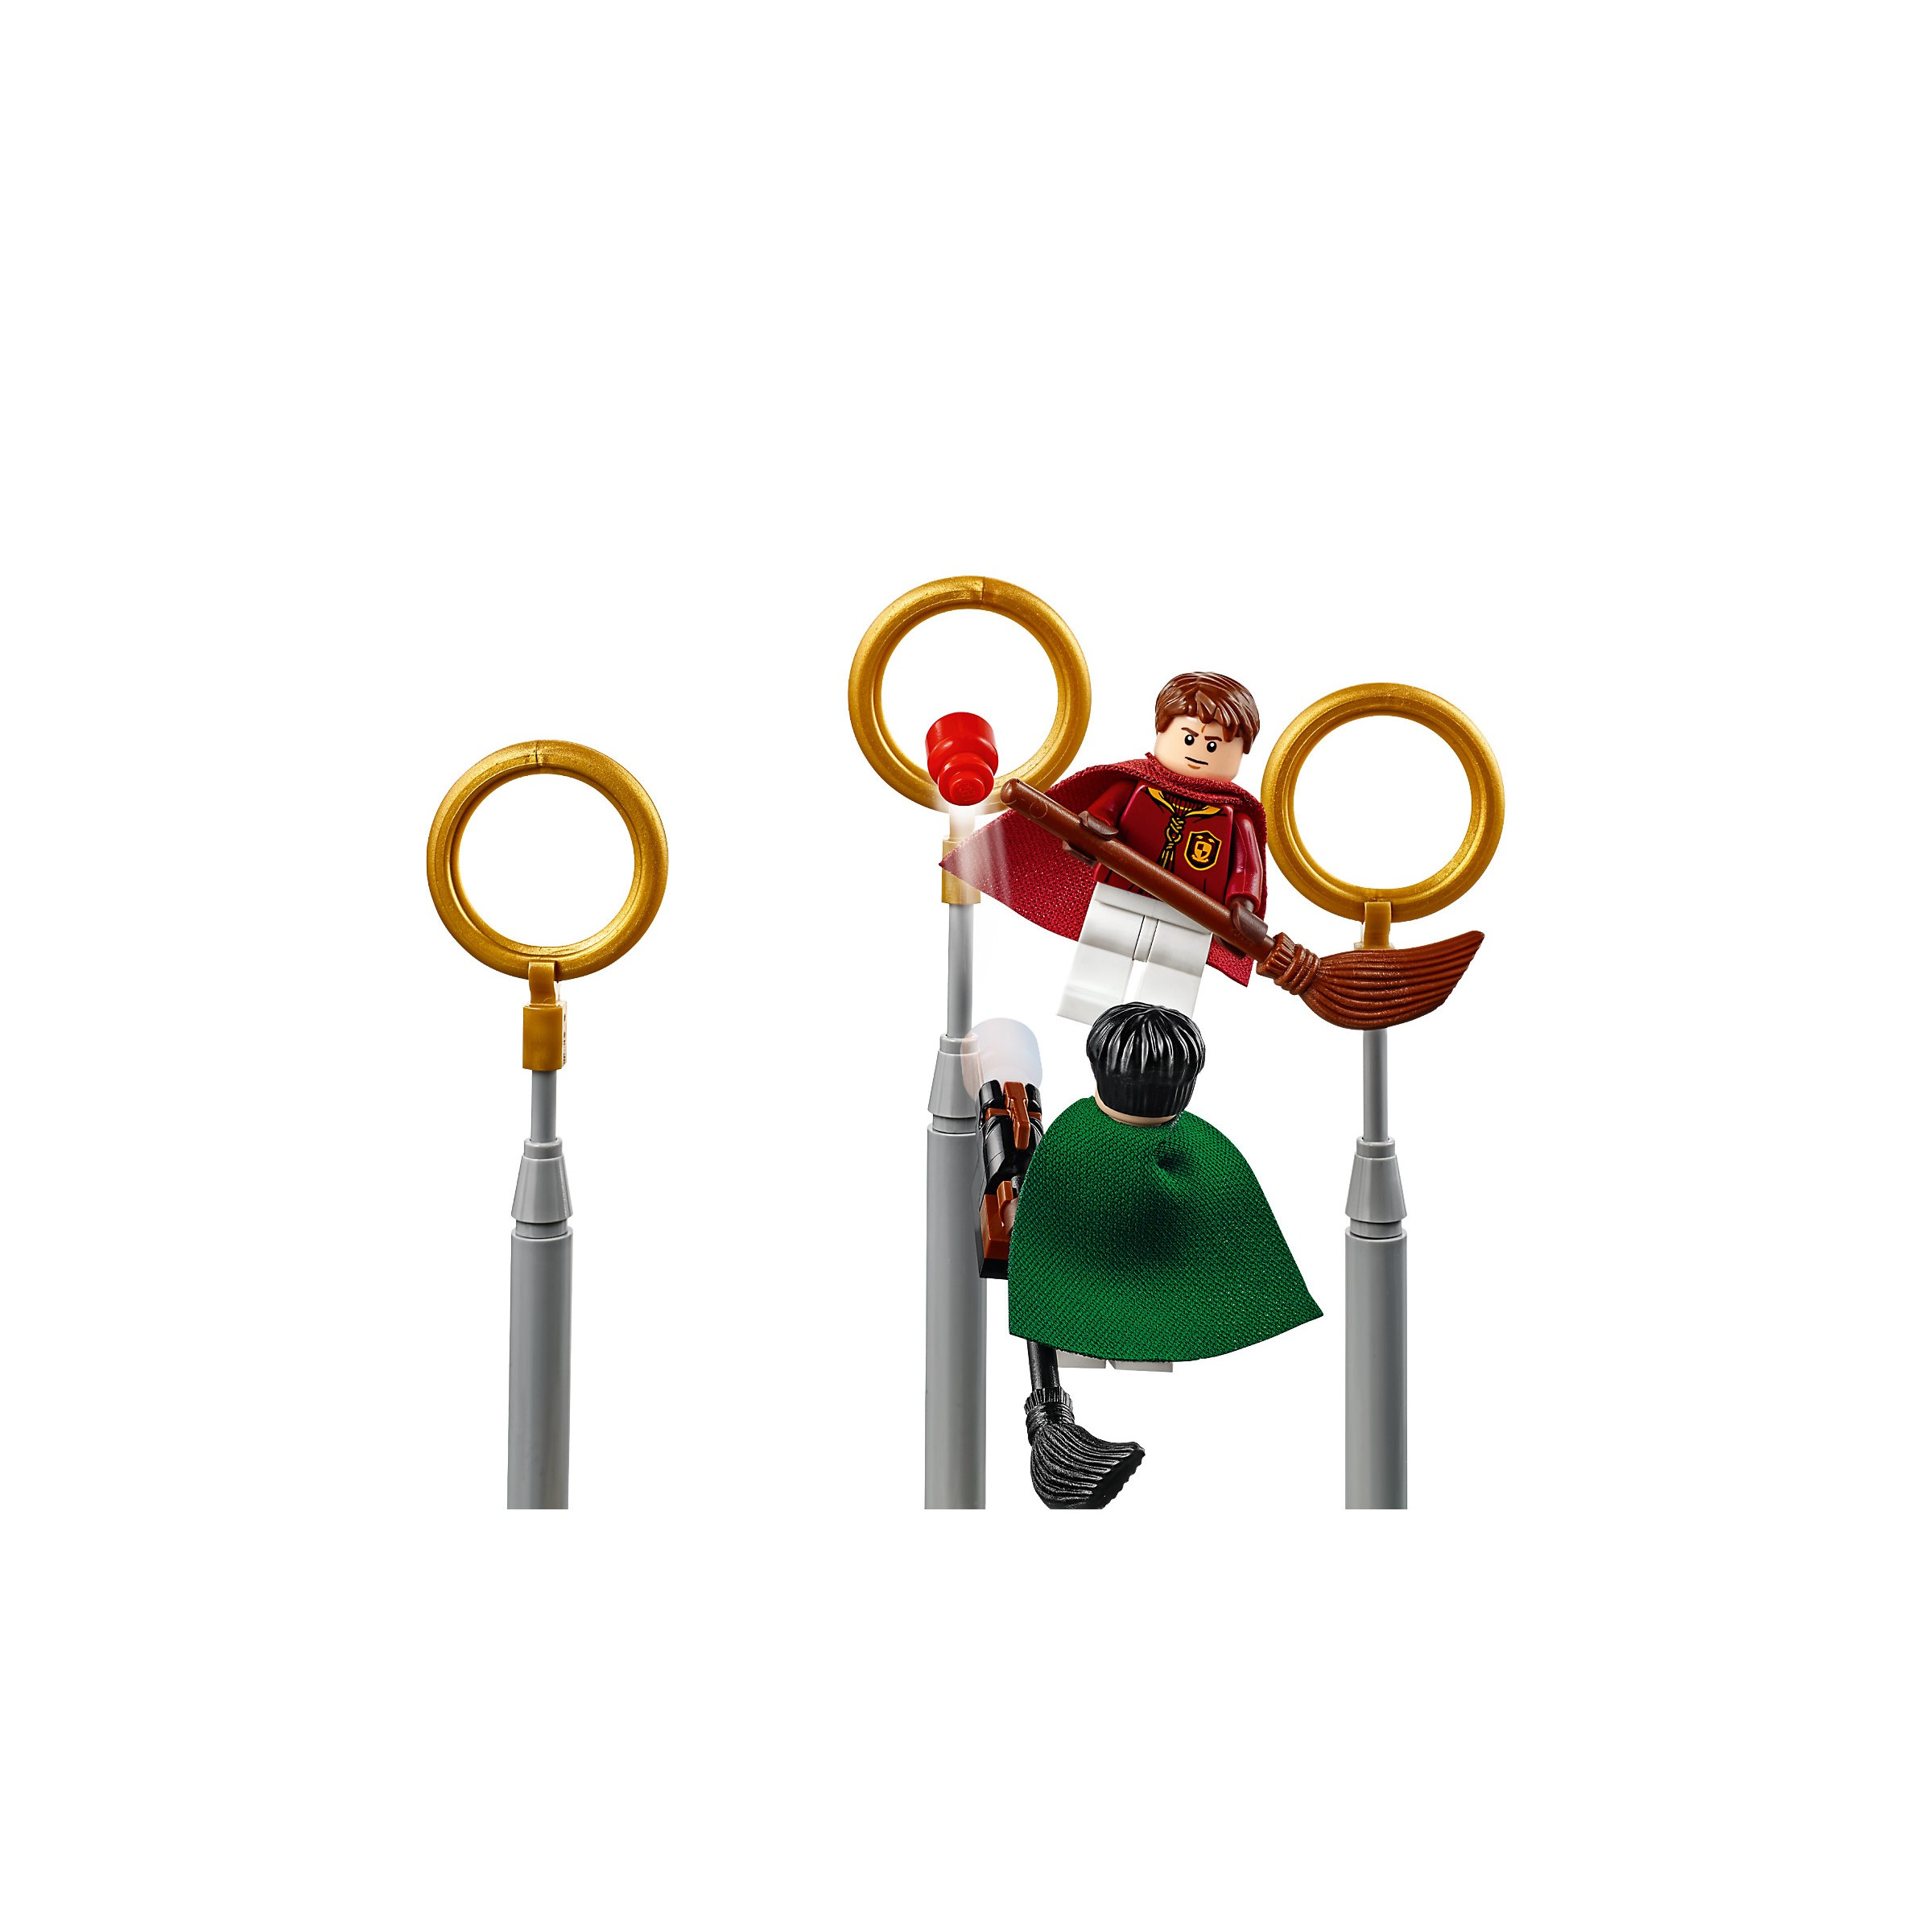 LEGO 75956 Harry Potter Quidditch Match at Hobby Warehouse